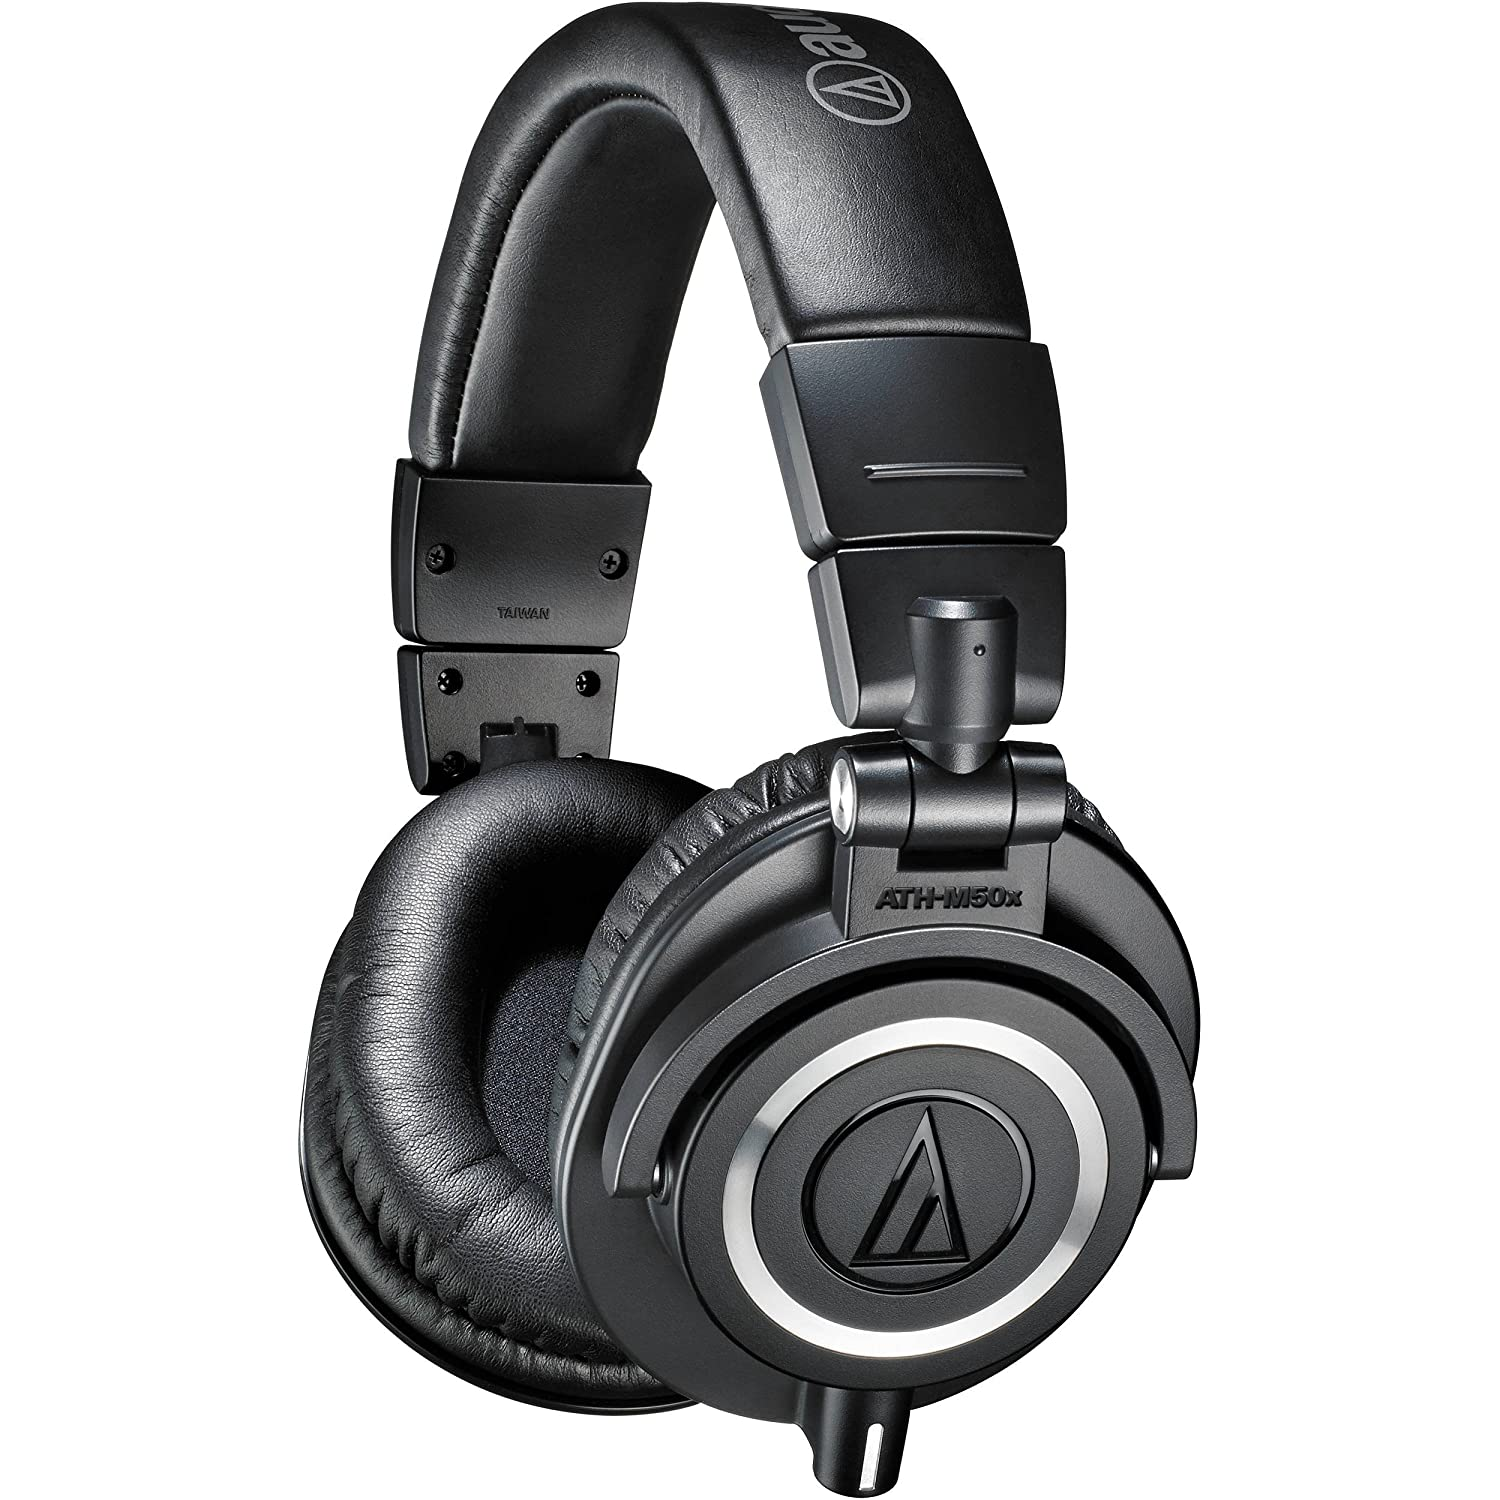 Audio-Technica ATH-M50x Professional Monitor Headphones